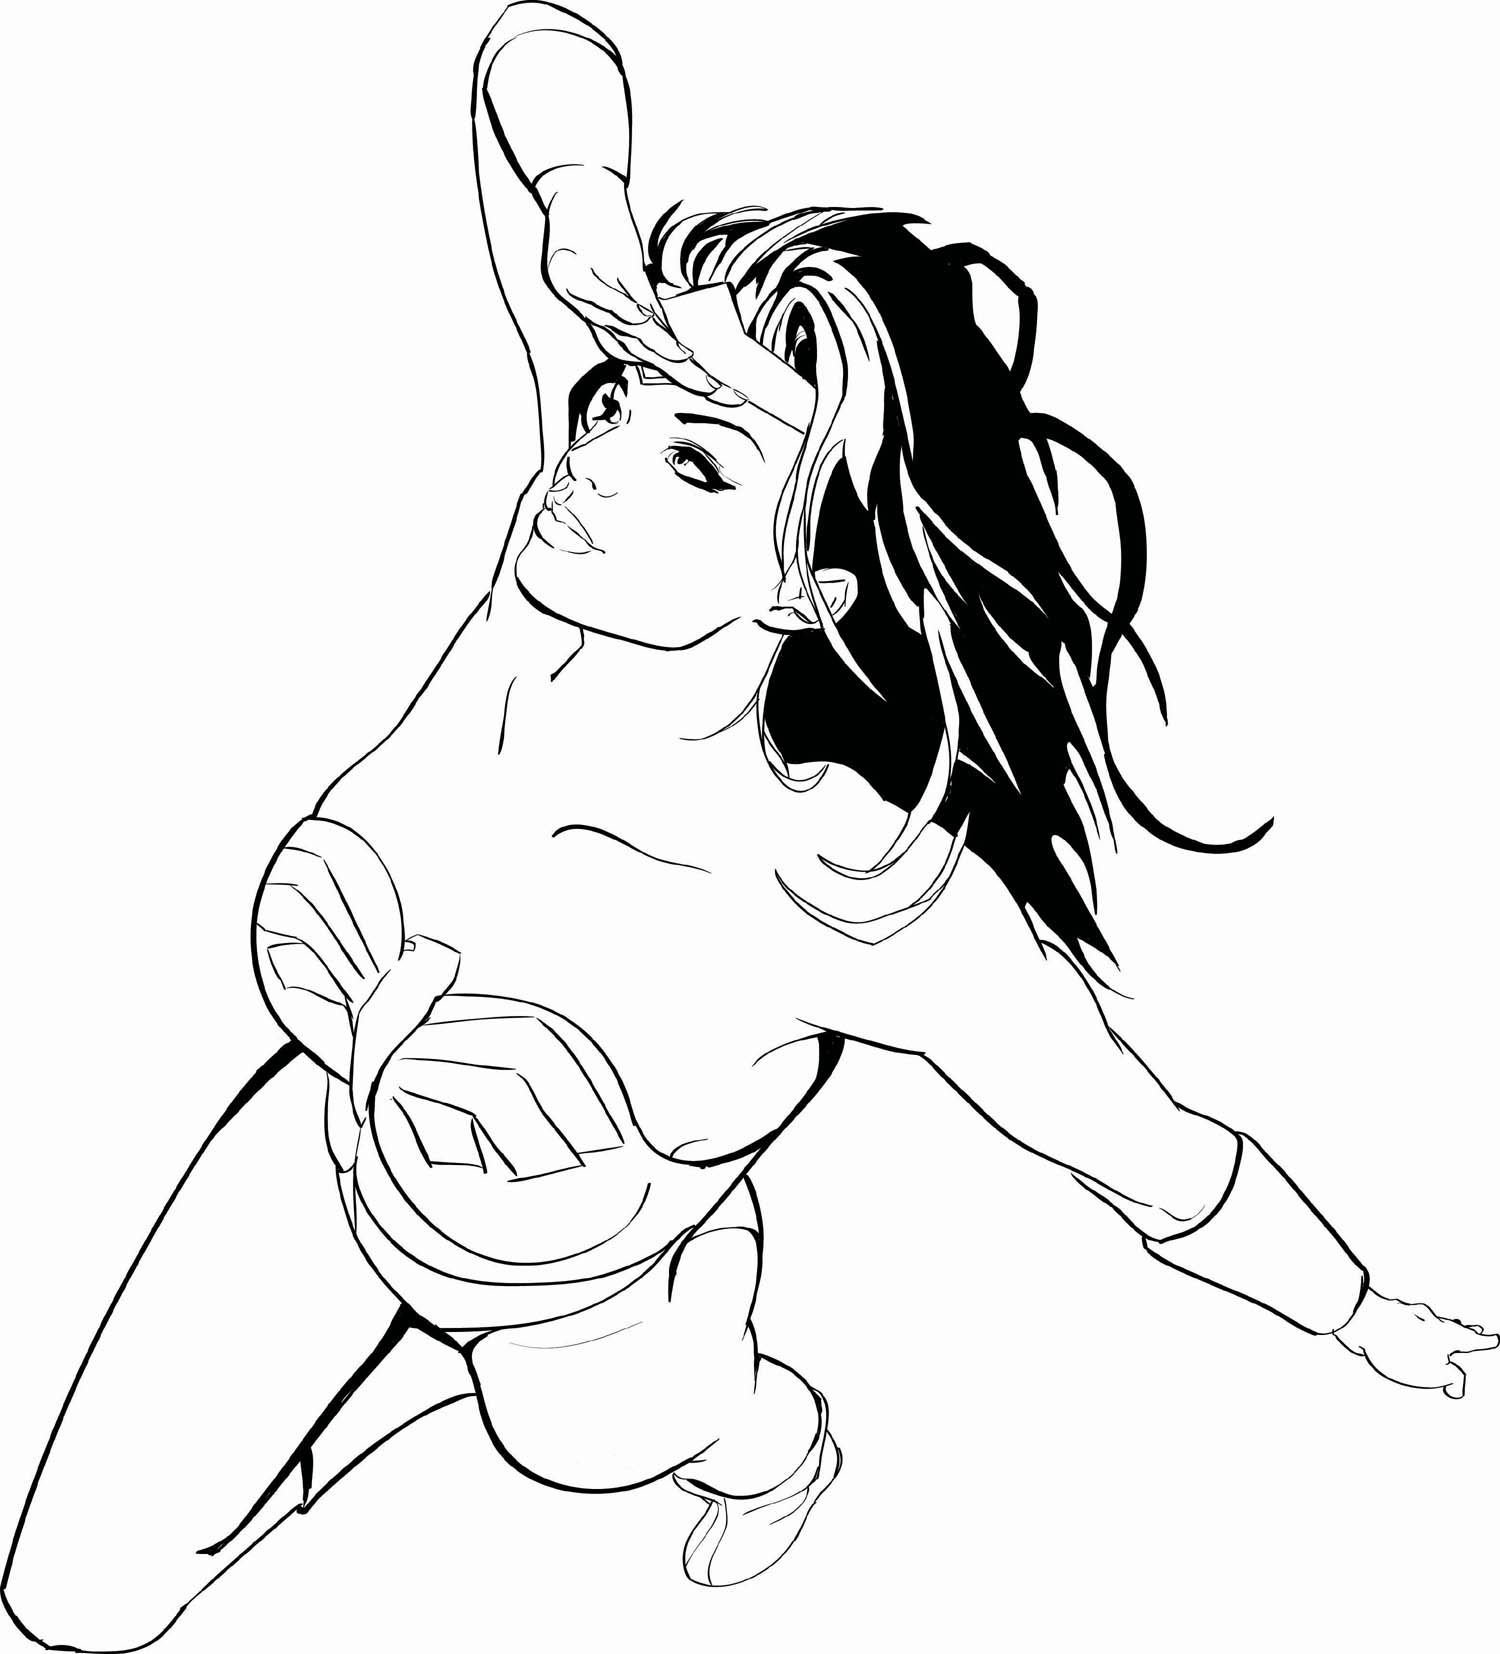 Wonder woman clipart colouring page - ClipartFest